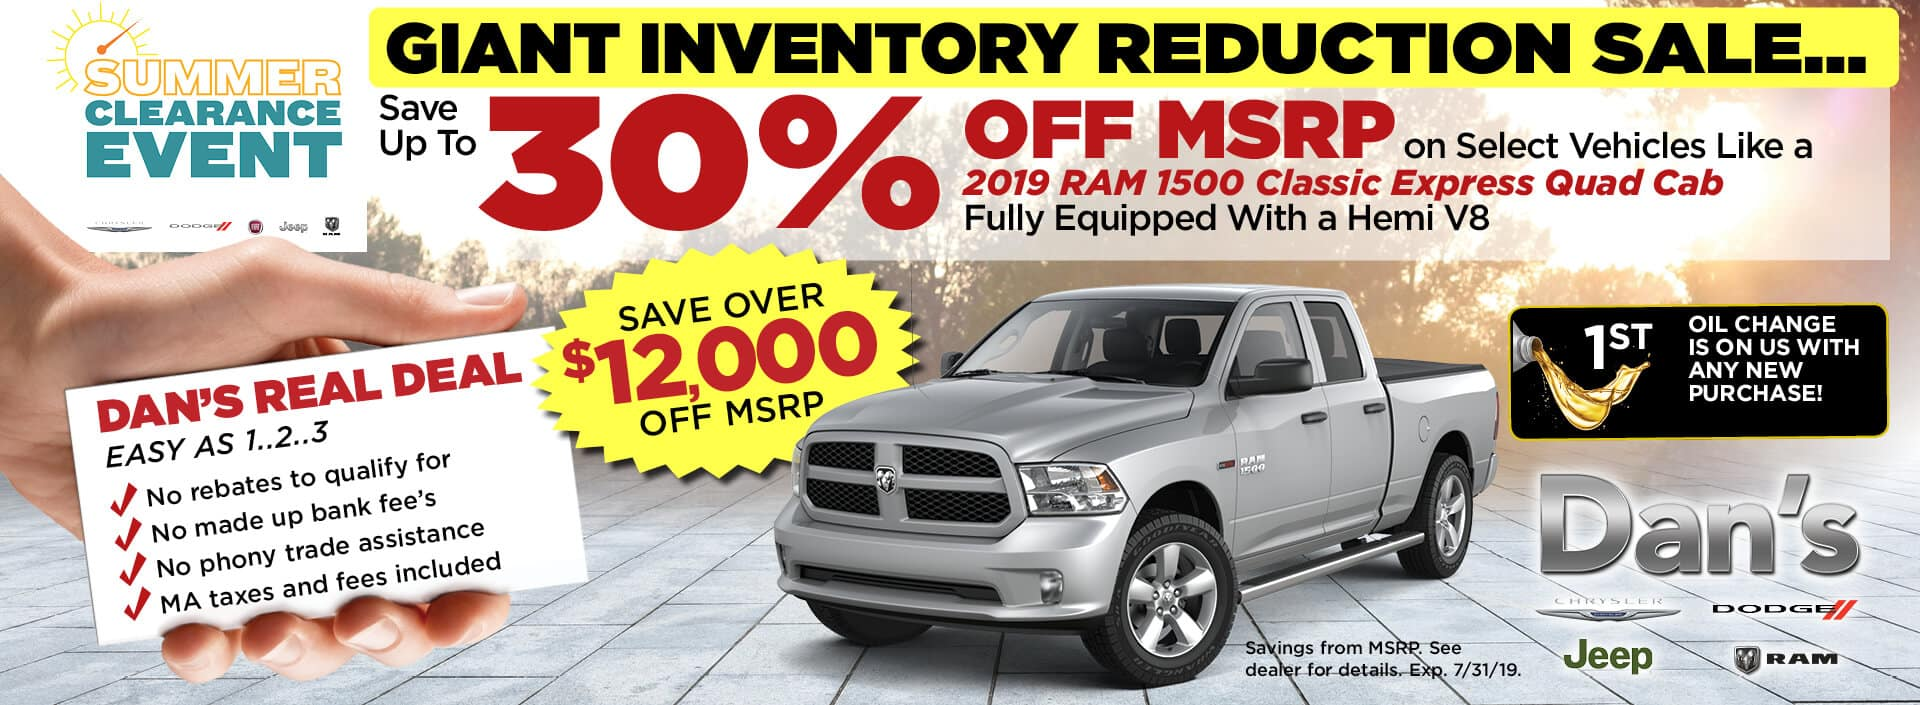 30% off MSRP on Select 2019 Ram 1500 Classic